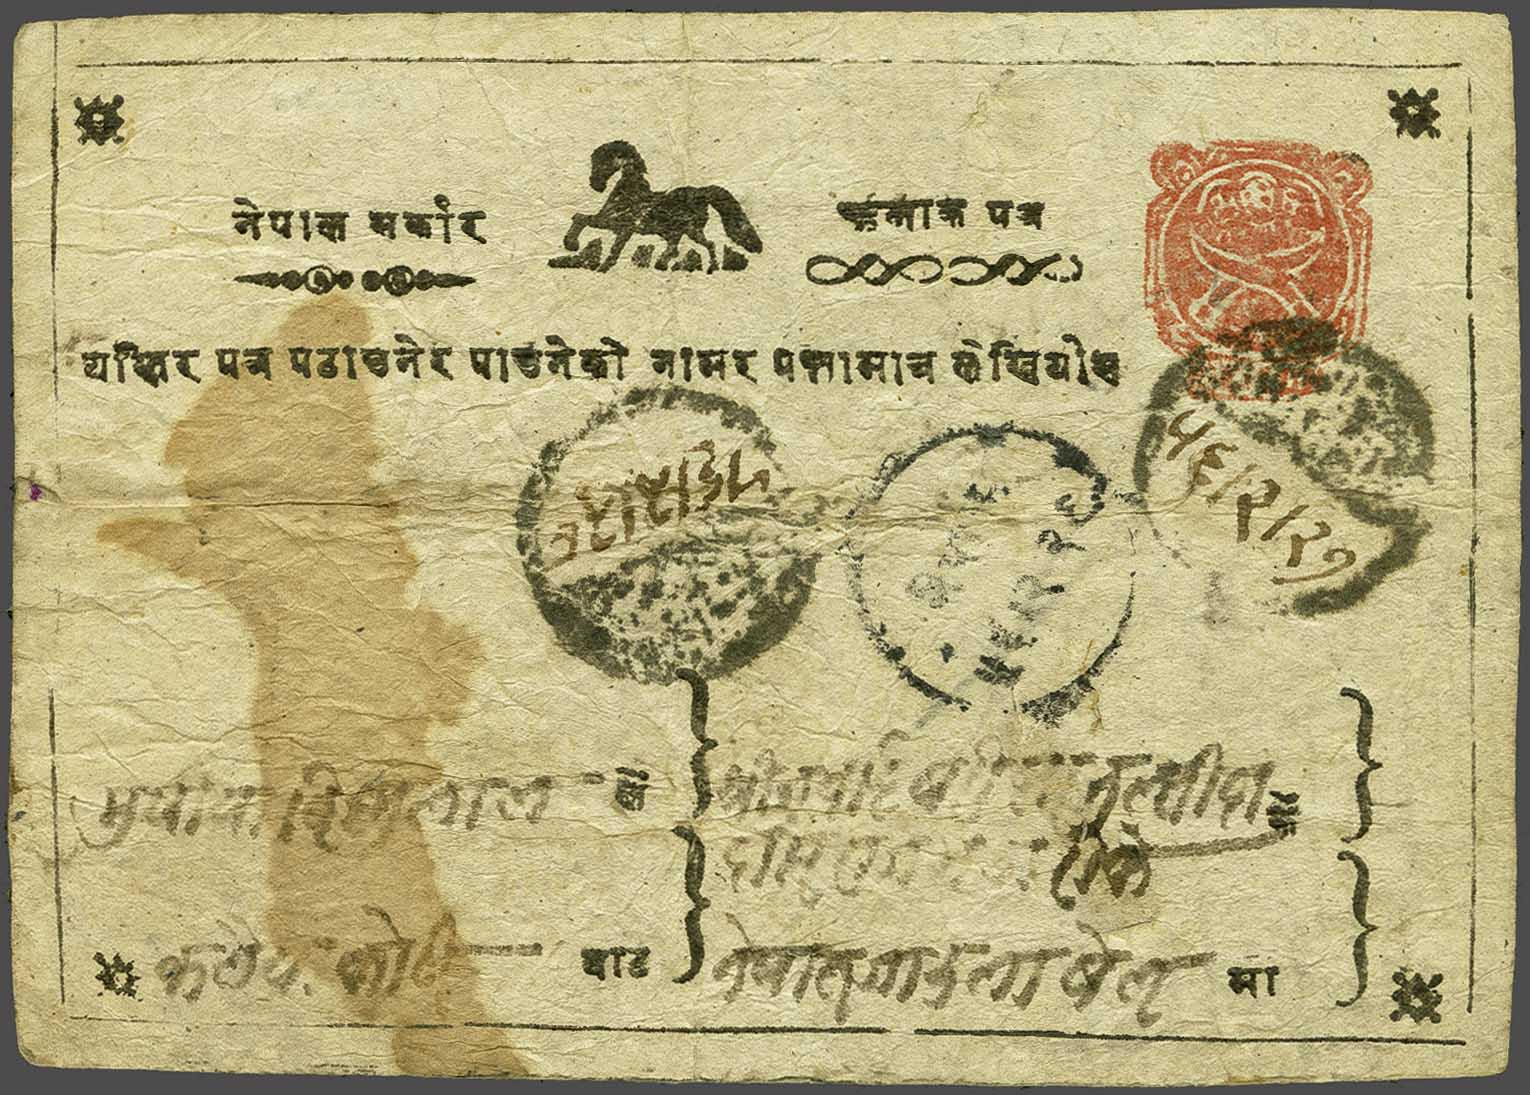 Lot 12 - Great Britain and former colonies Nepal -  Corinphila Veilingen Auction 245-246 Day 1 - Nepal - The Dick van der Wateren Collection, Foreign countries - Single lots, Picture postcards